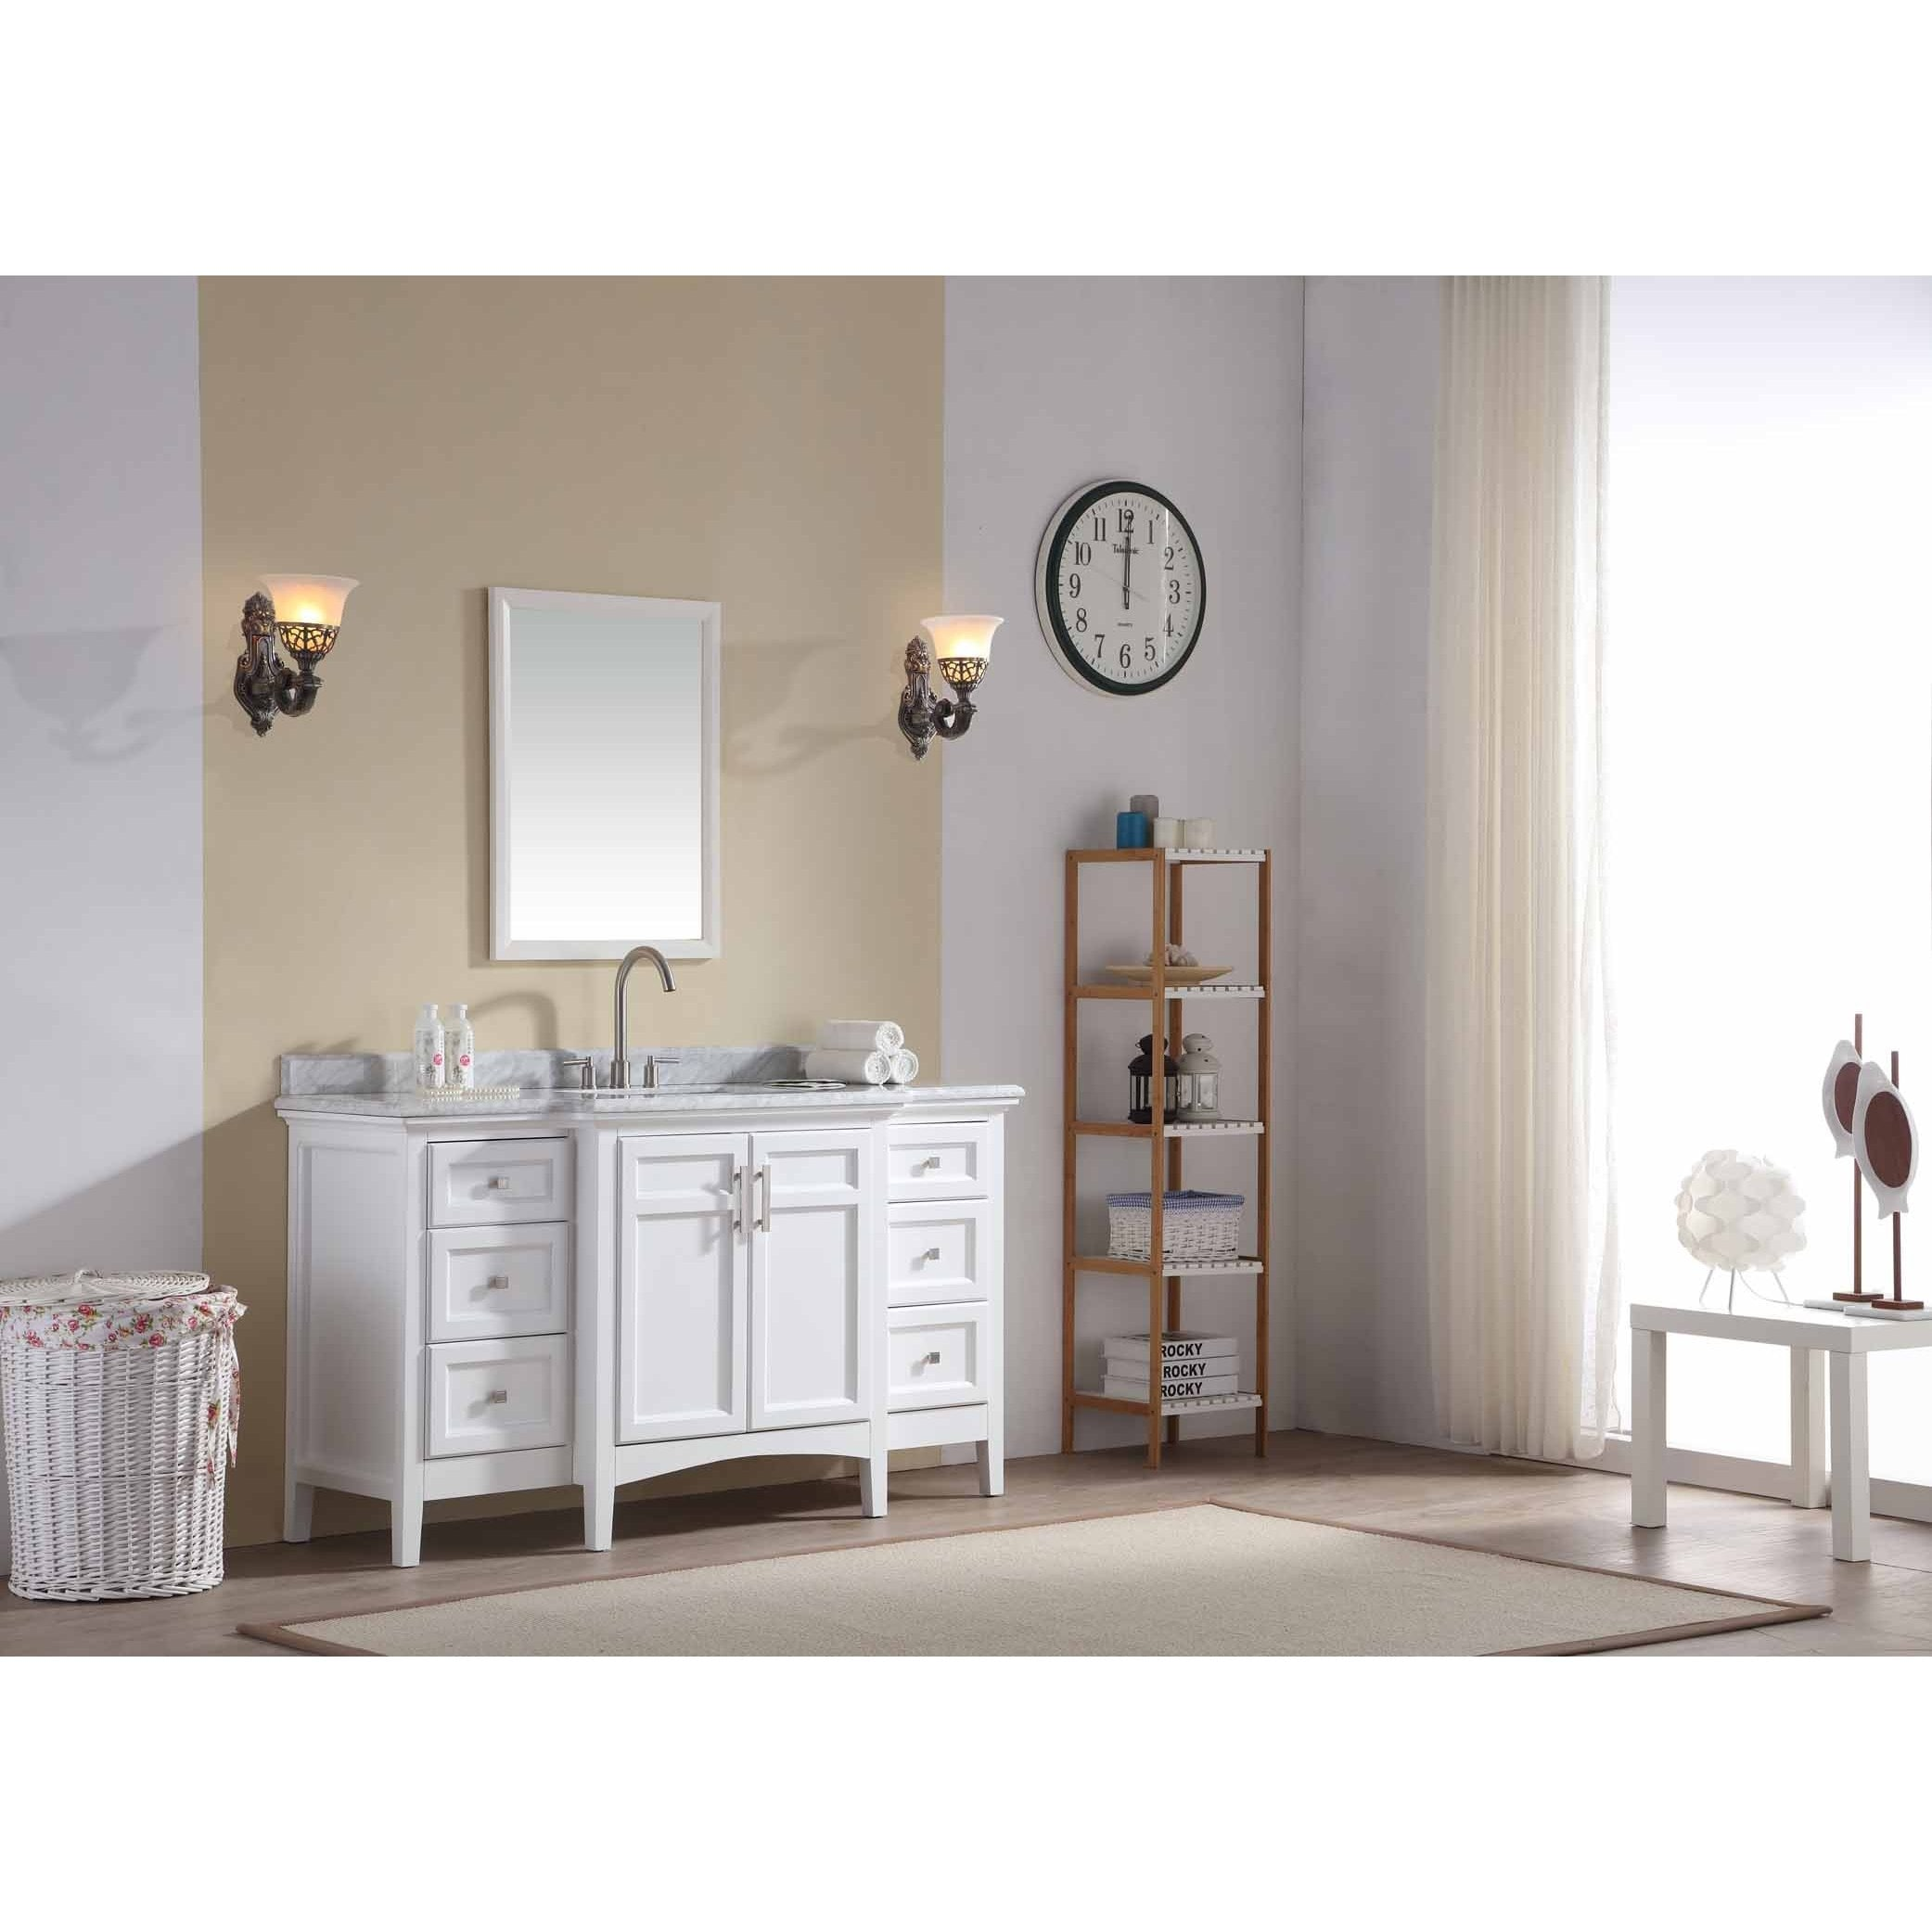 tops size grey home inch vanity vanities sink with of dual bathrooms single bath design white bathroom cabinets full local and top venetian